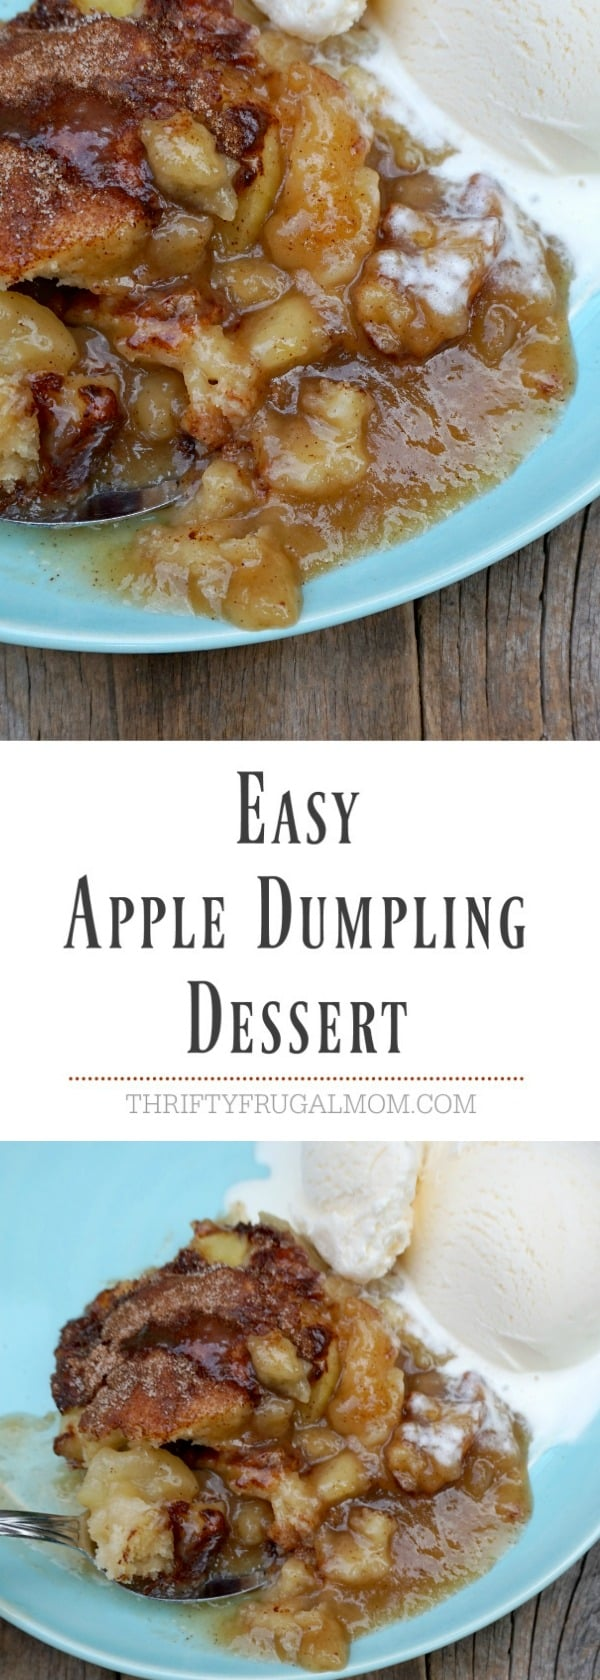 Easy Apple Dumpling Dessert- a great homemade apple dumpling recipe